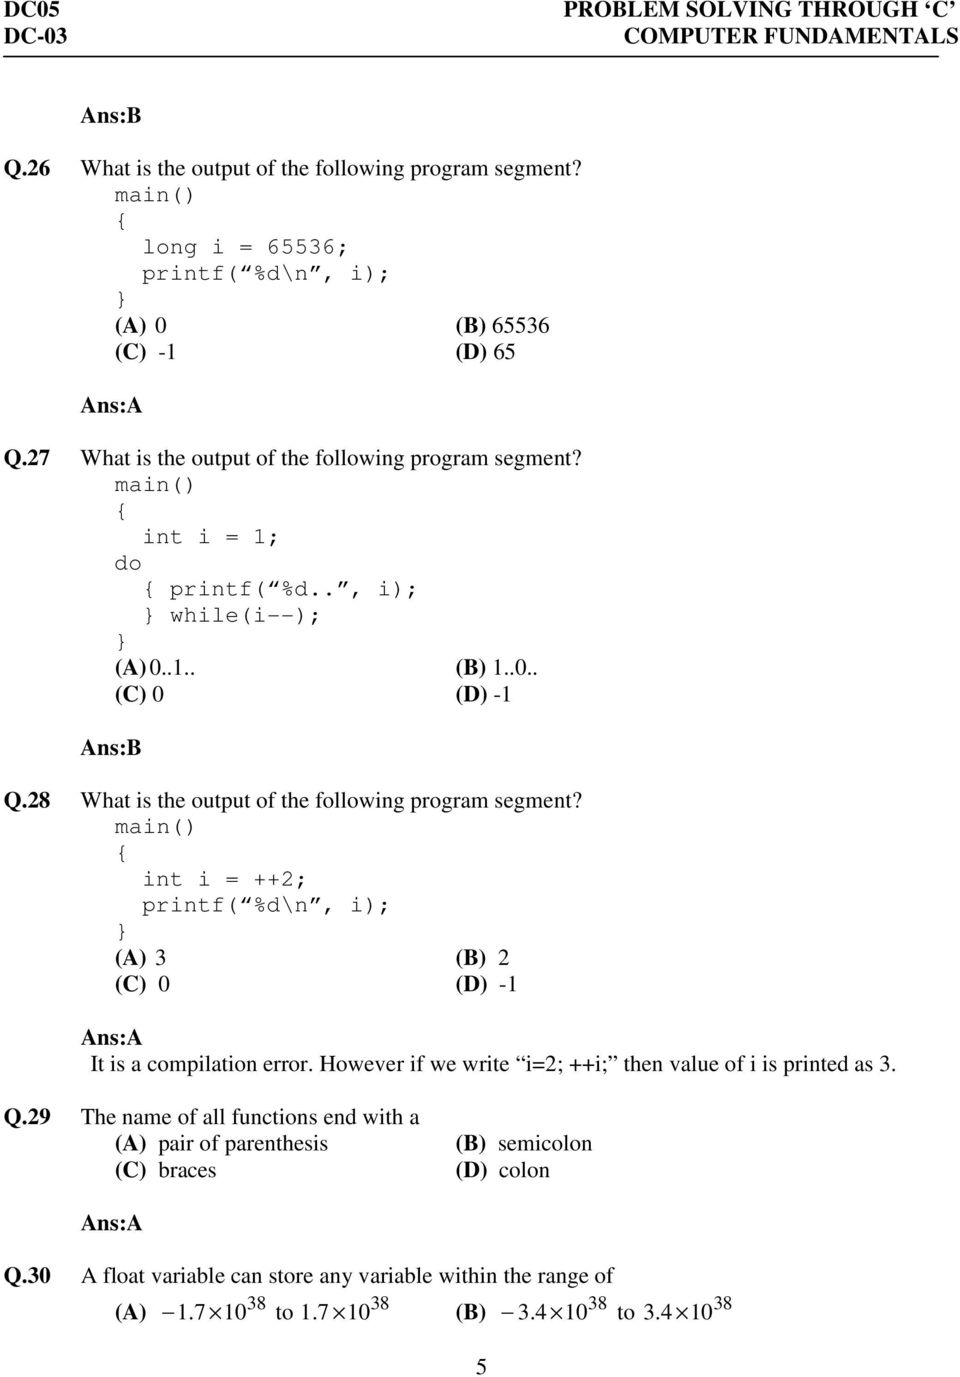 28 What is the output of the following program segment? main() int i = ++2; printf( %d\n, i); (A) 3 (B) 2 (C) 0 (D) -1 Ans:A It is a compilation error.